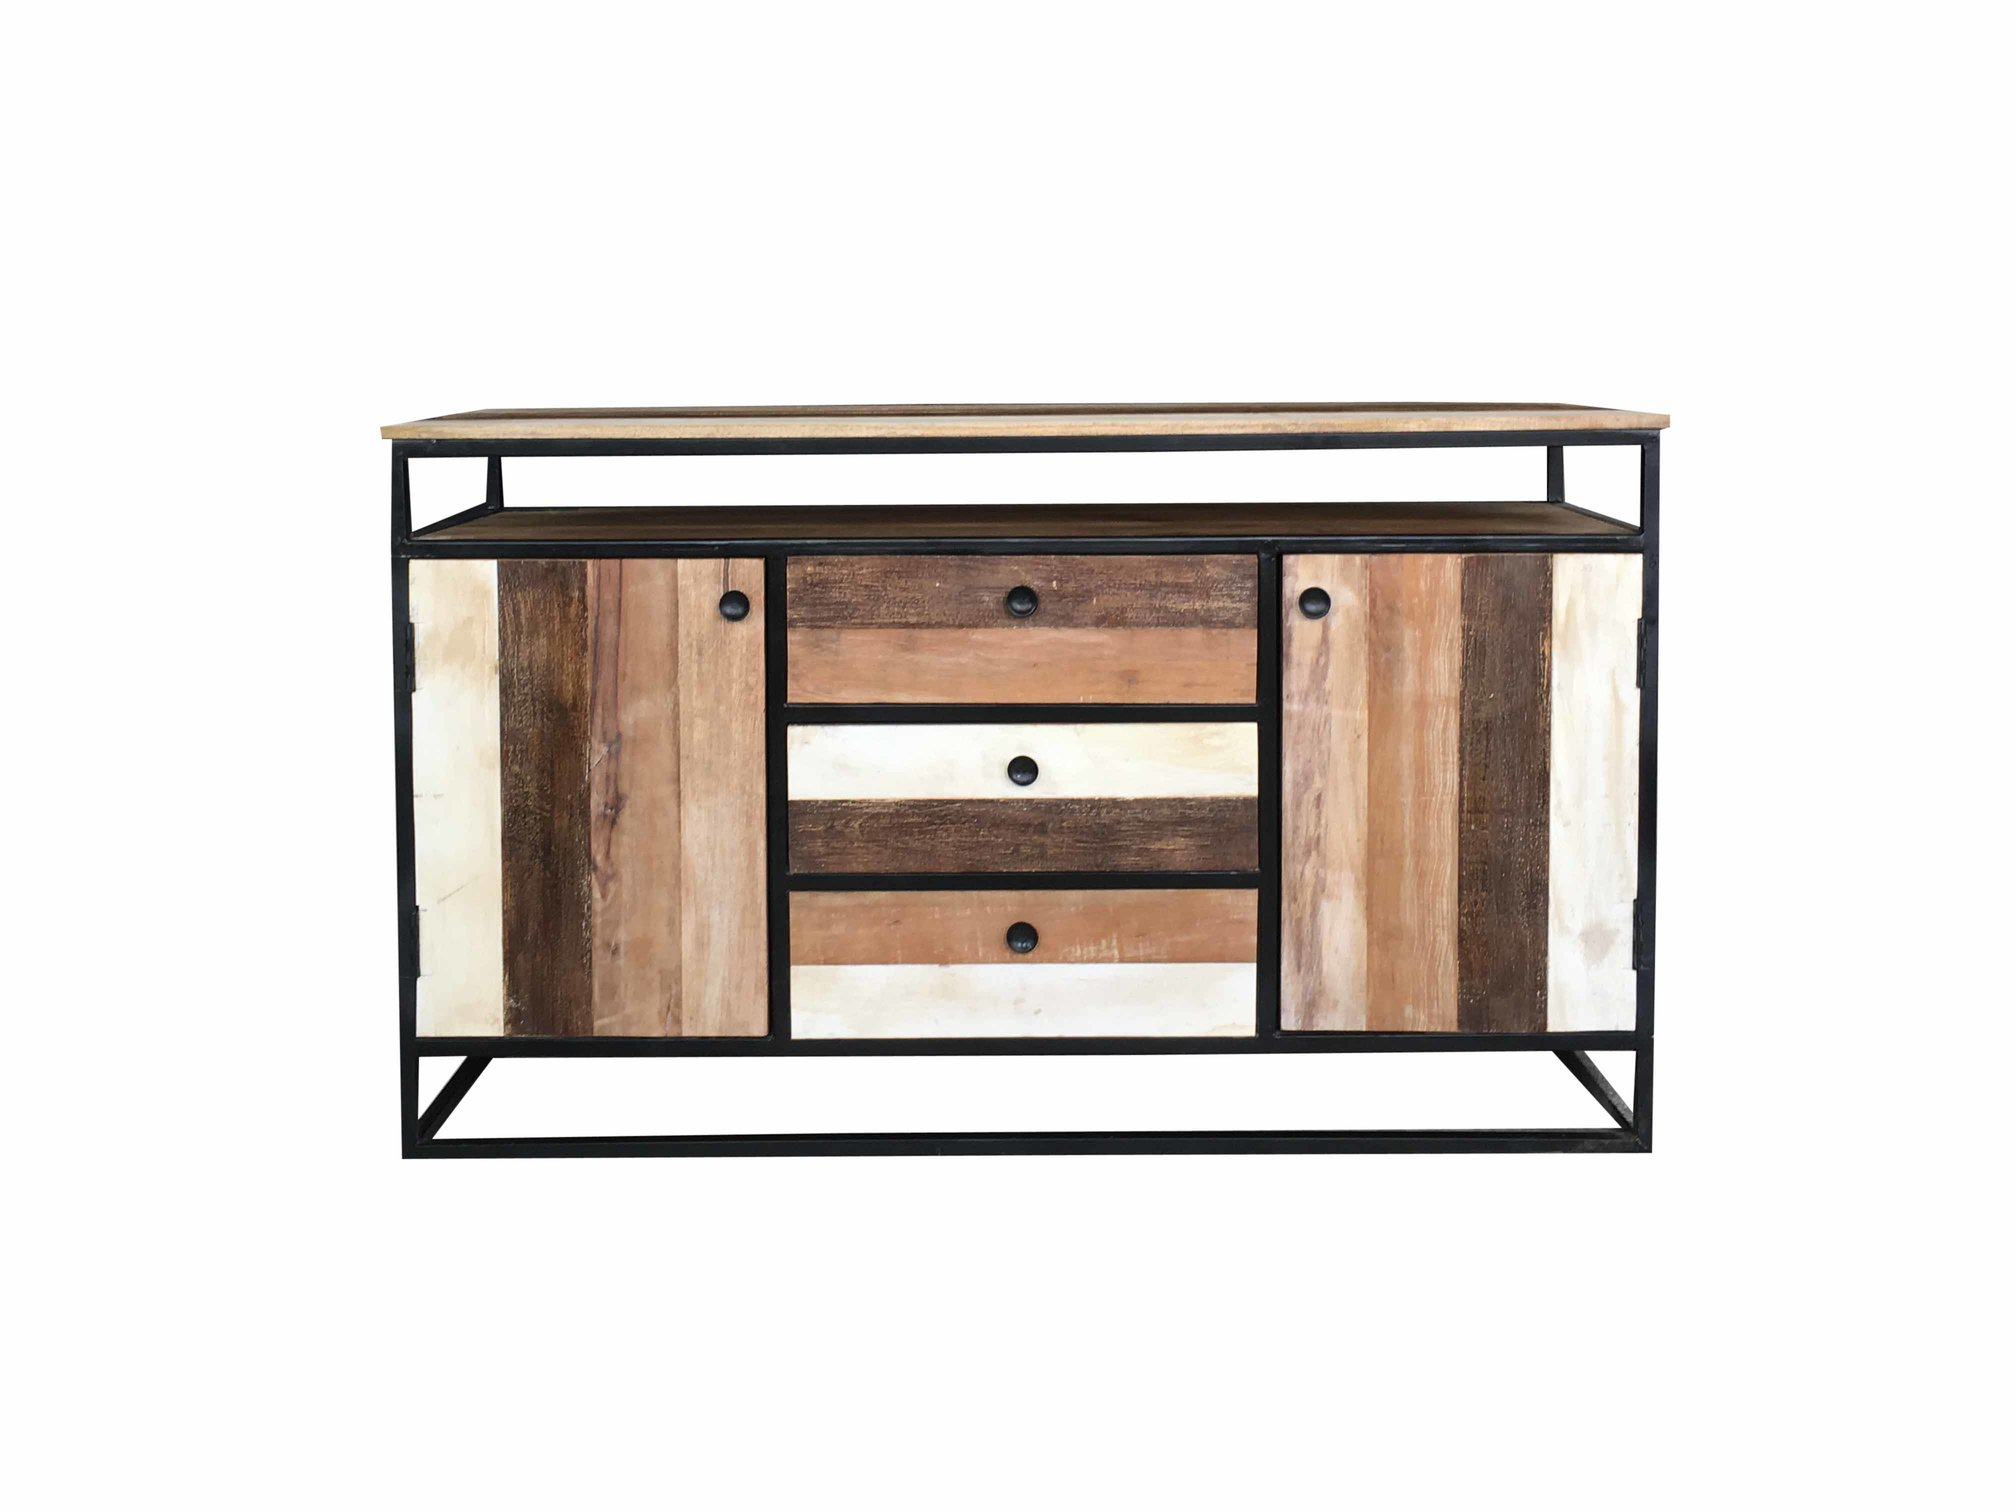 Mango Wood 2 Door/2 Drawer Sideboards In Most Popular Industrial Reclaimed Mango Wood 2 Door 3 Drawer Sideboard With Metal (View 4 of 20)